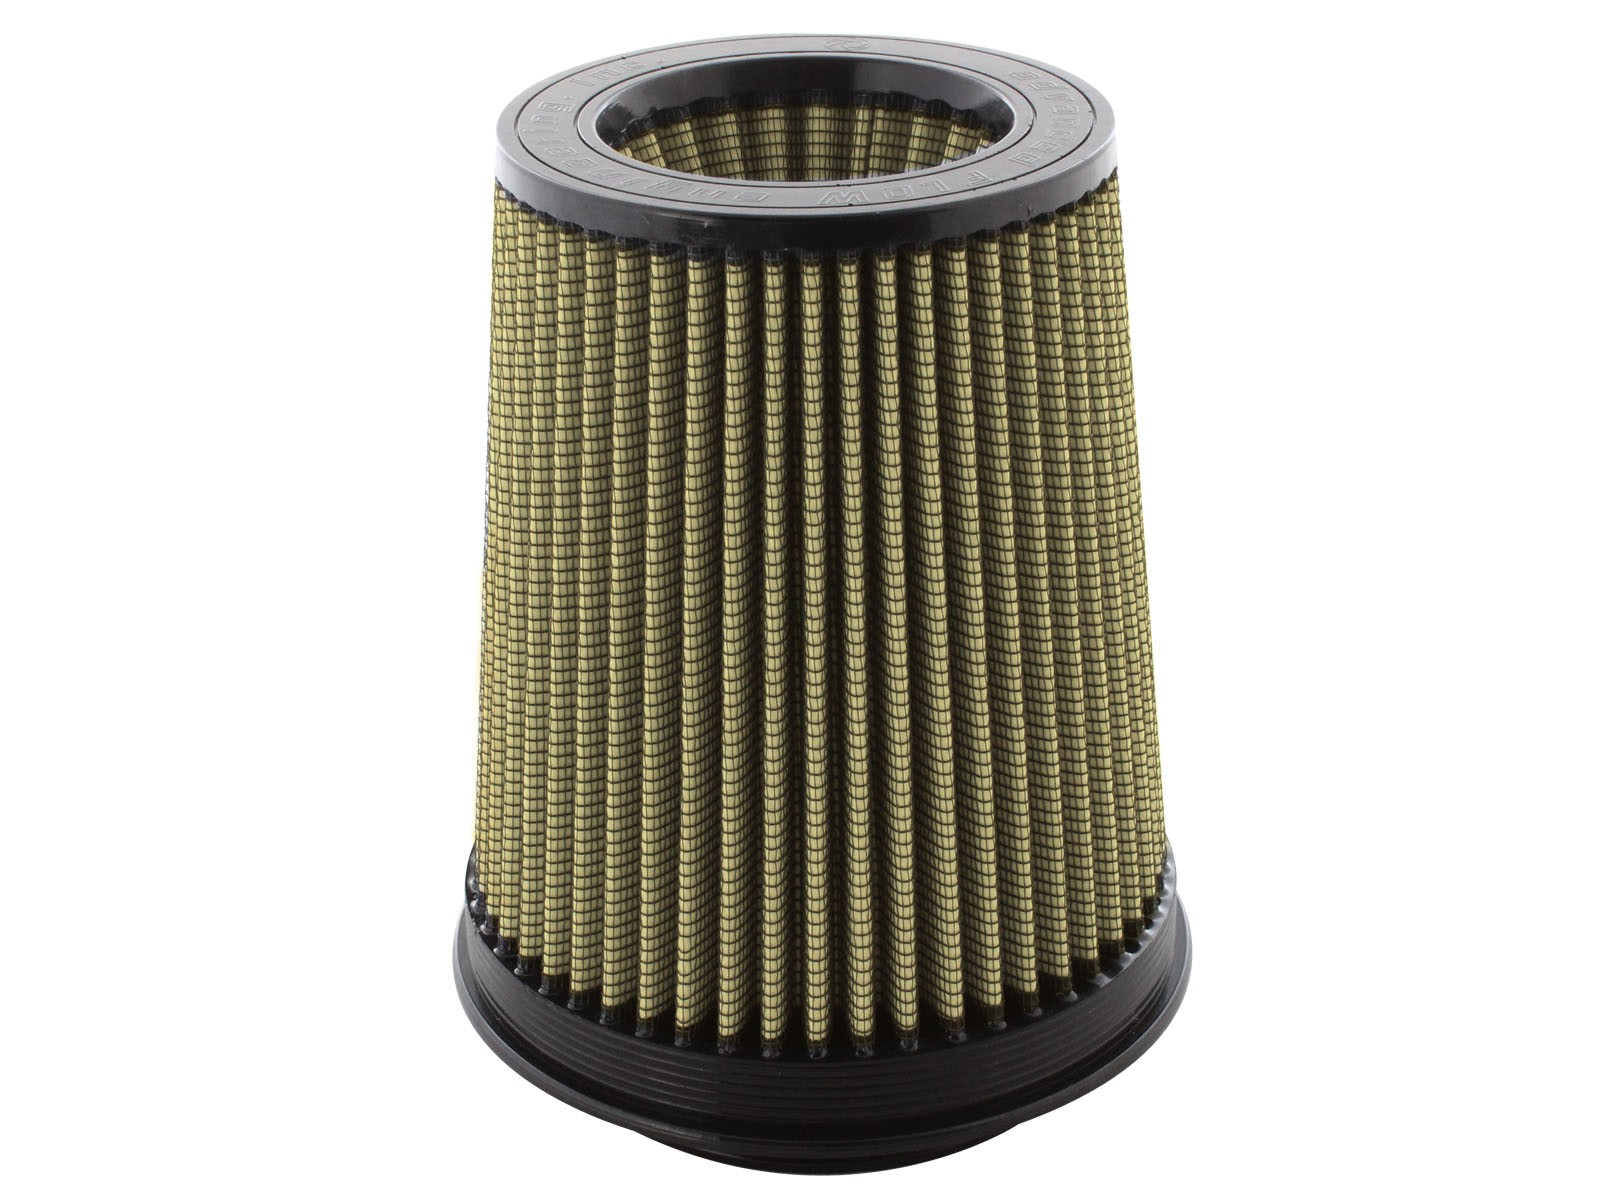 aFe POWER 72-91062 Magnum FLOW Pro GUARD7 Air Filter